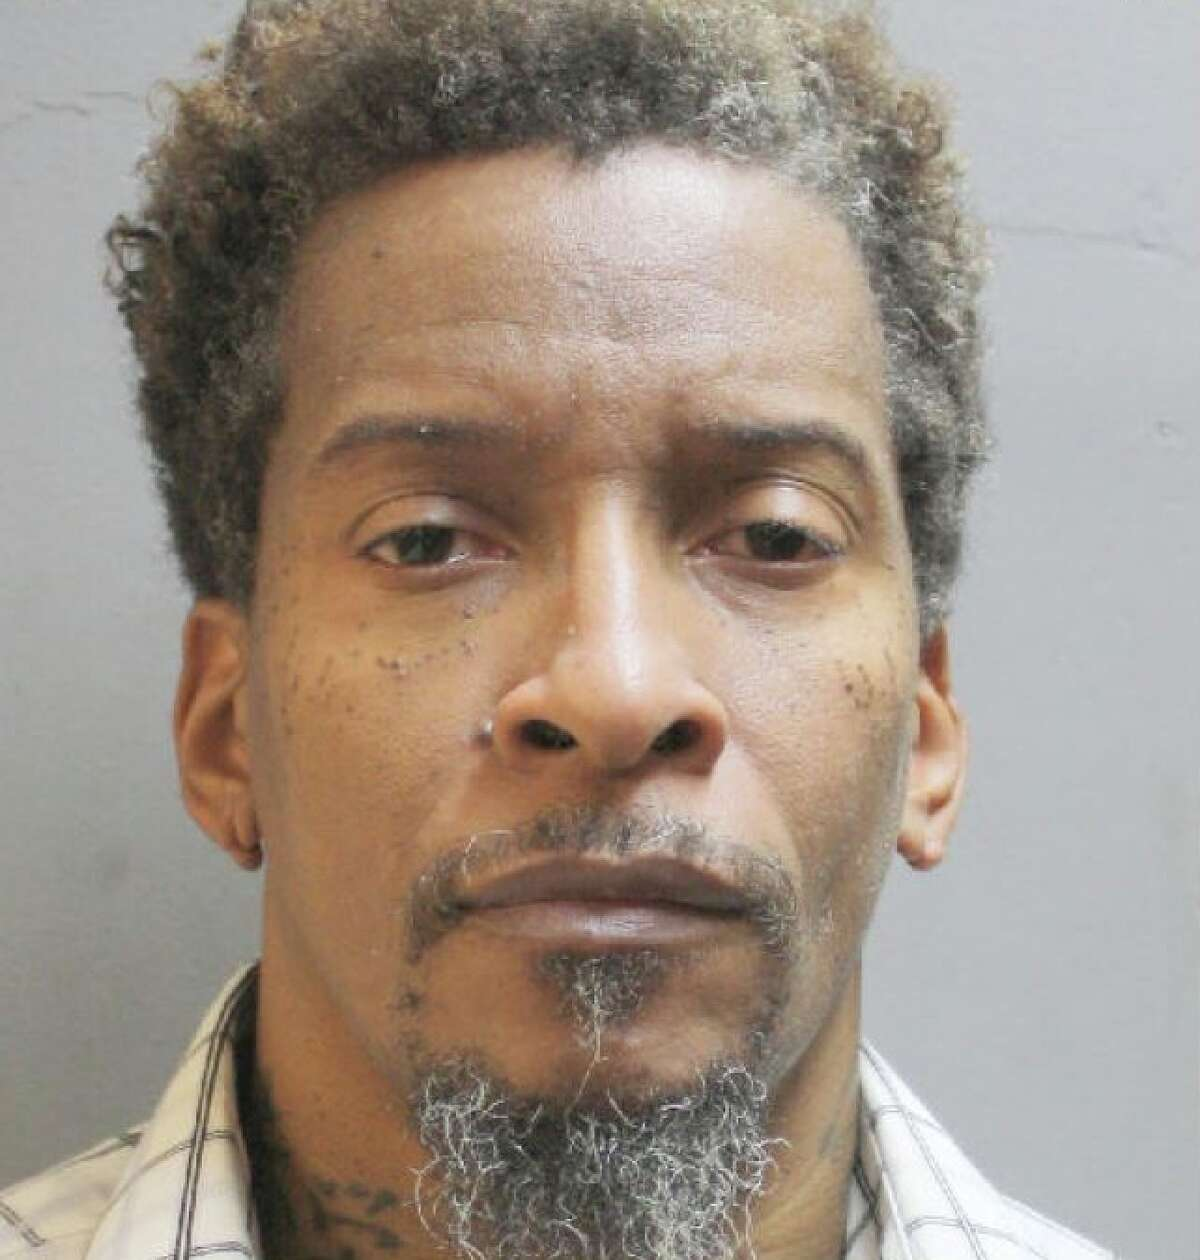 Paul Nixon, 51, is wanted on a third-degree felony aggravated forgery charge after allegedly forging his wife's signature on divorce papers.